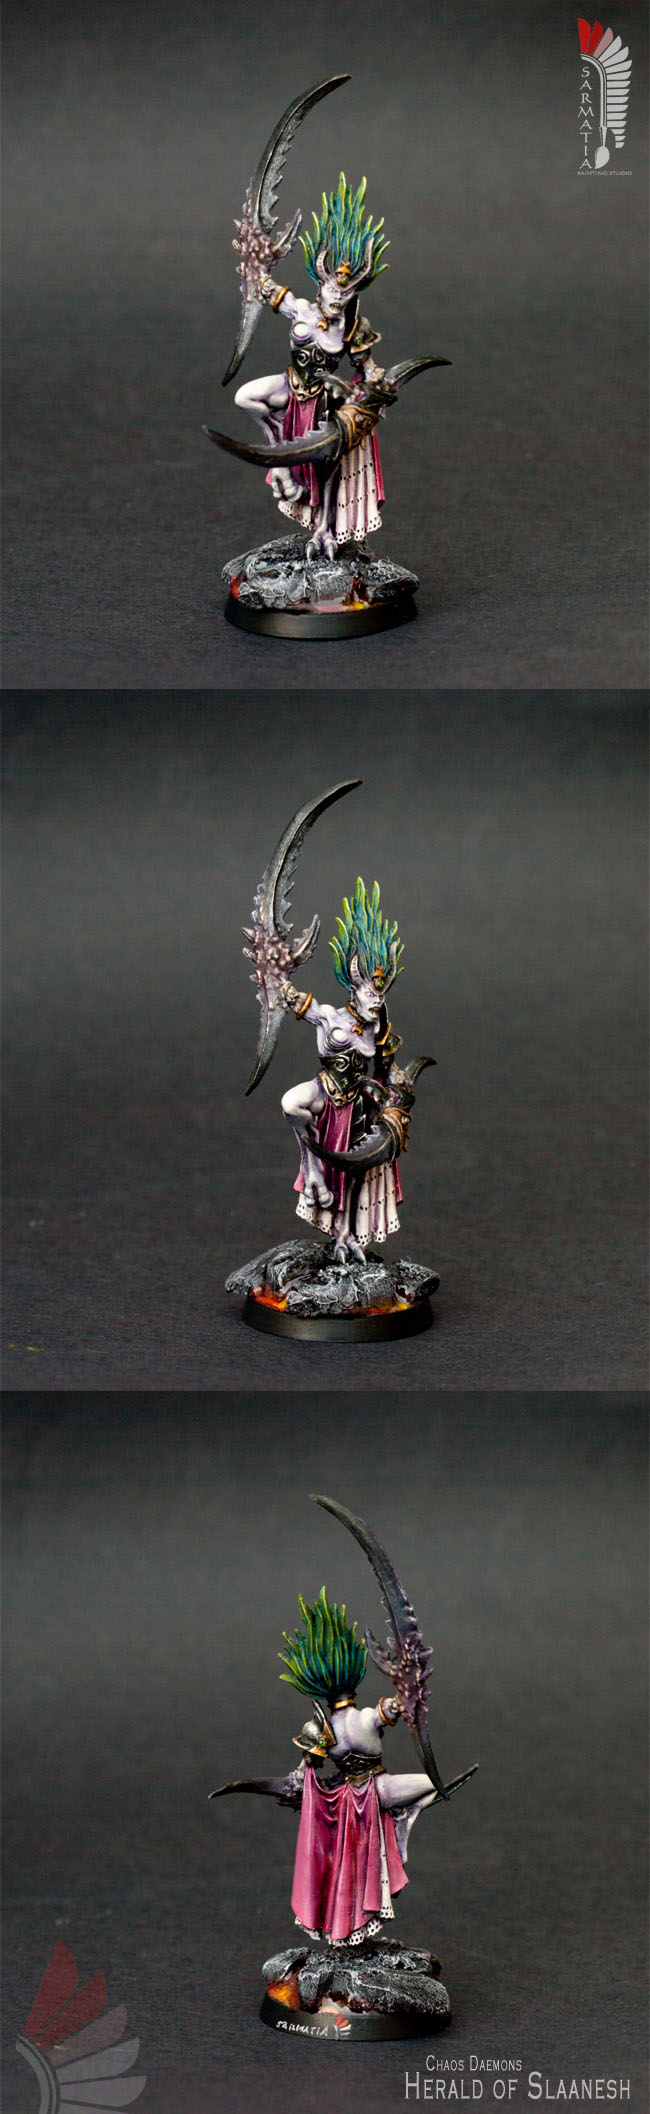 herald_of_slaanesh